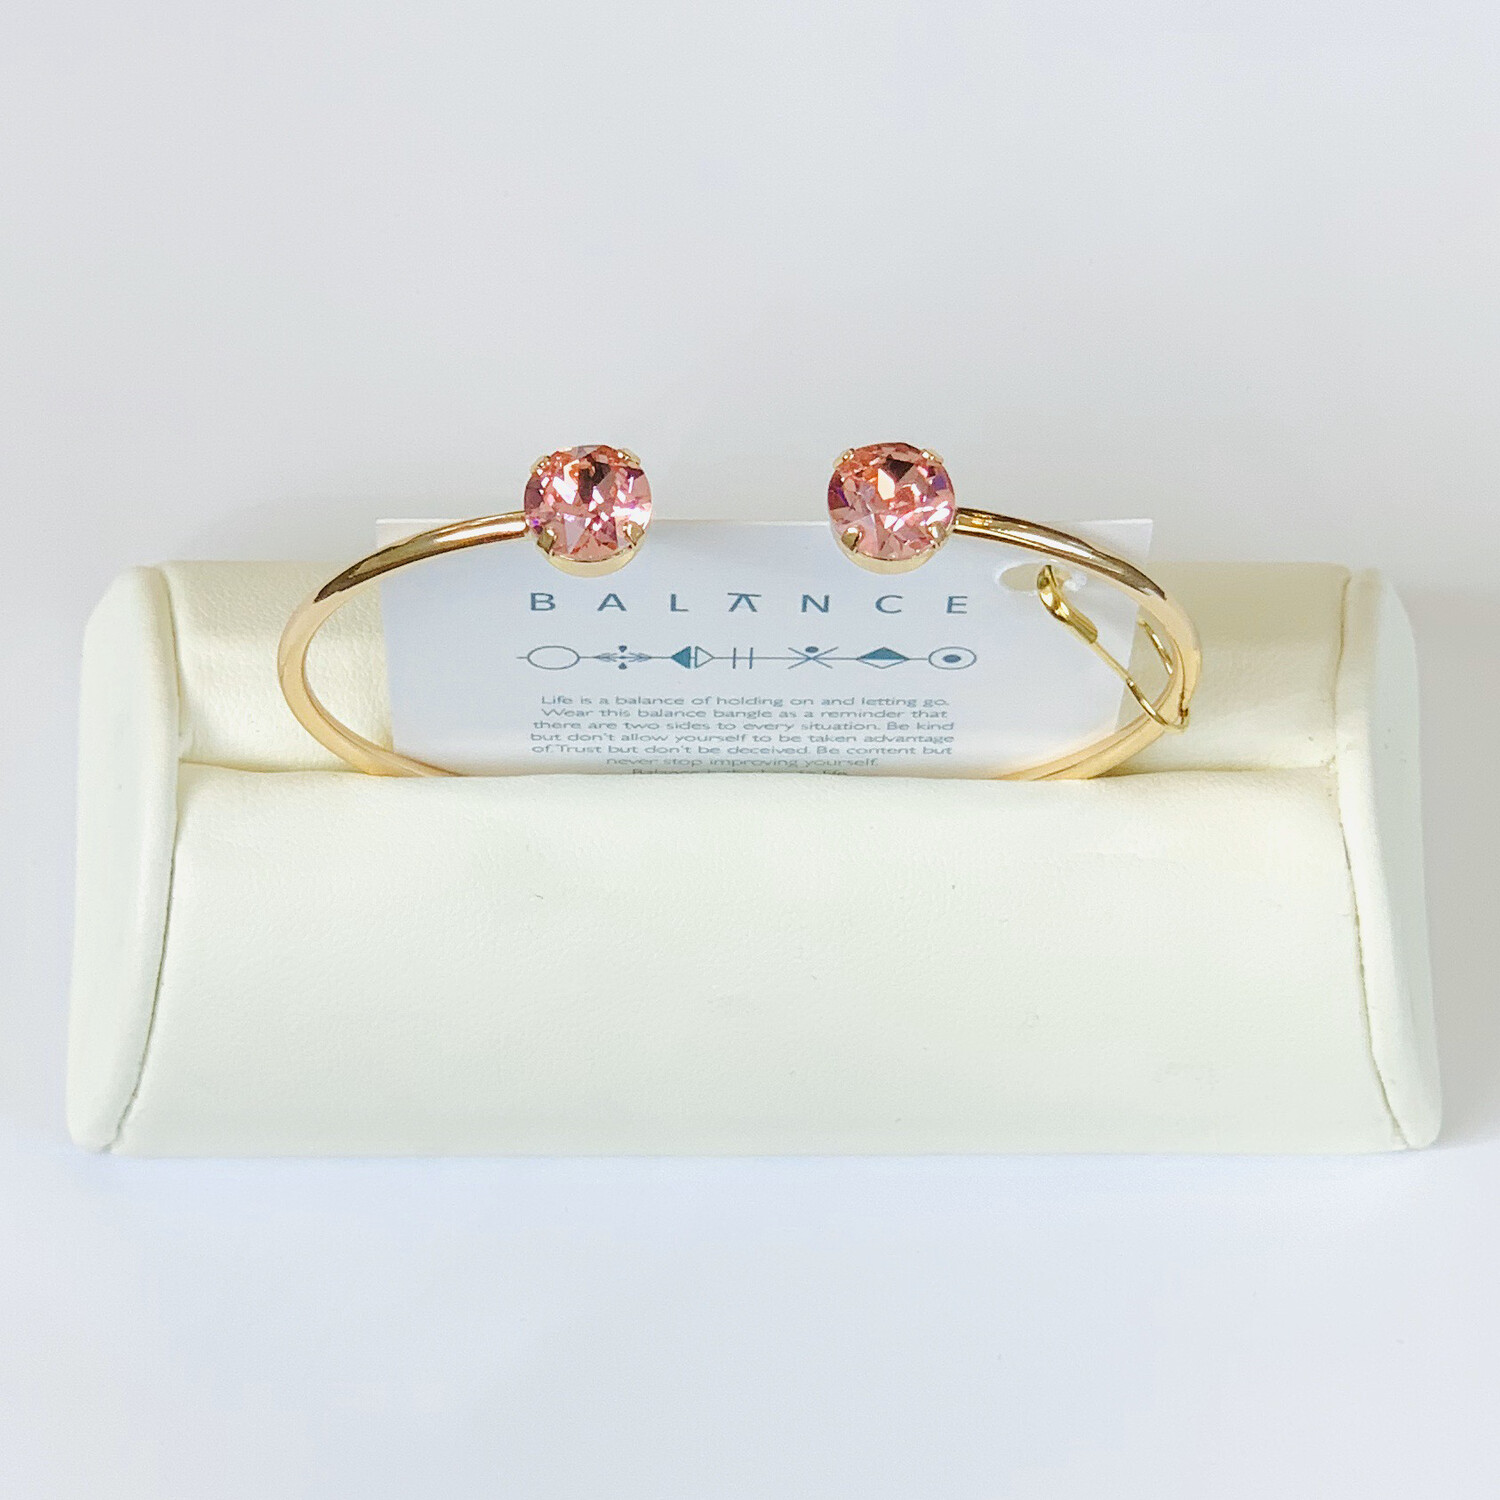 Balance Bracelet Gold/Light Rose